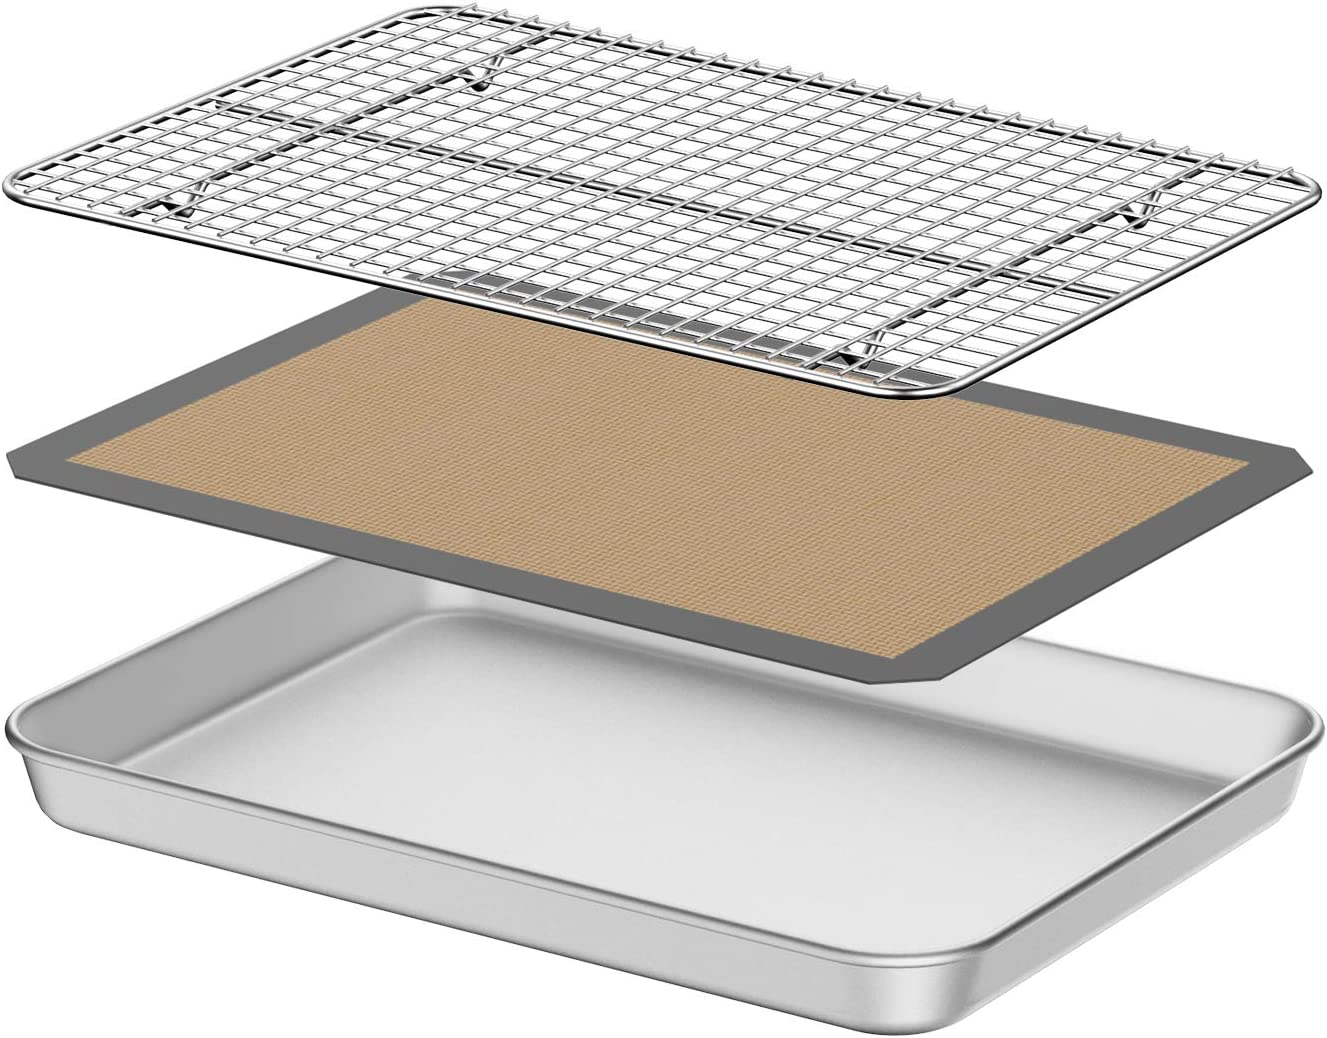 Baking Sheet with Silicone Mat, Umite Chef 10 inch Cookie Sheet Baking Pan, Non Toxic Silicone Baking Mat & Stainless Steel Cooling Rack Heavy Duty & Easy Clean